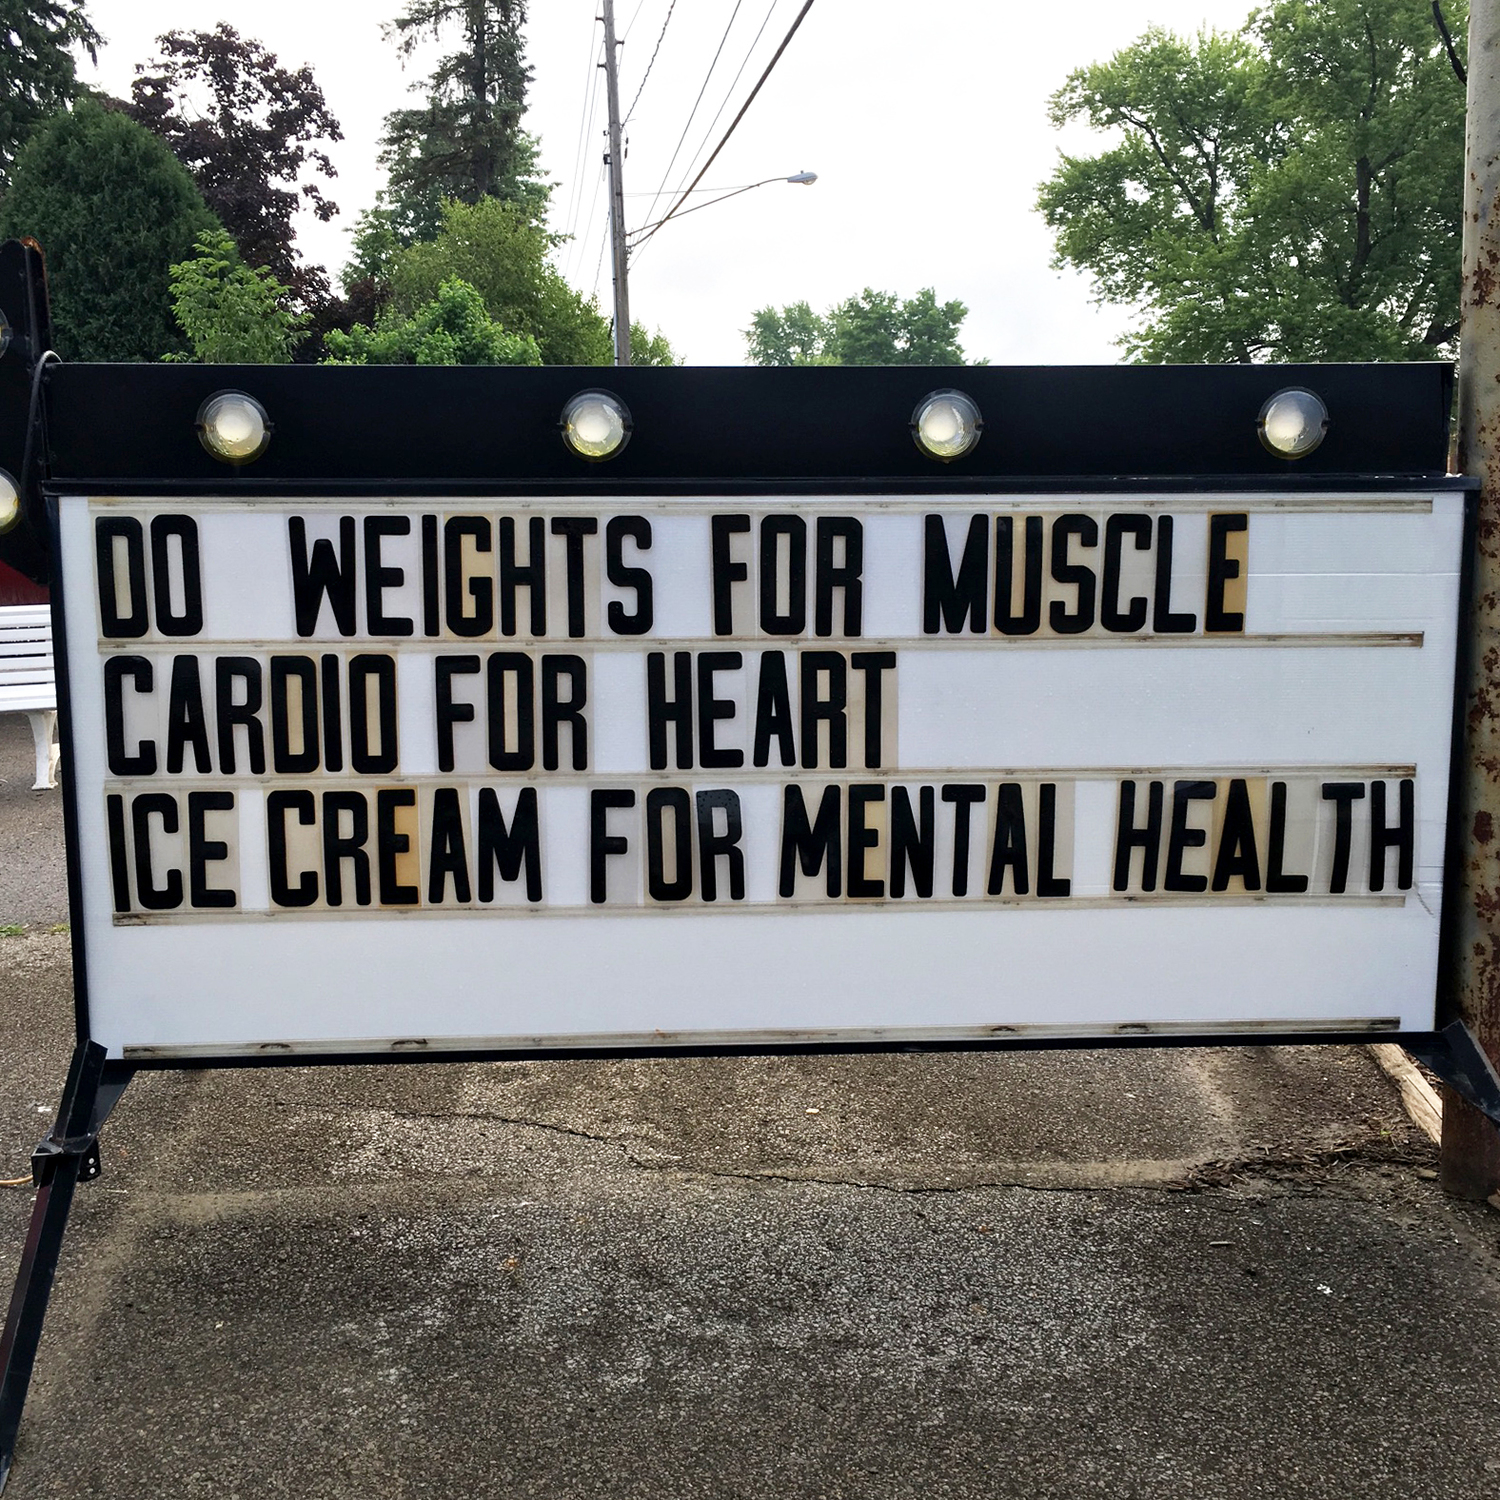 Do weights for muscle, cardio for heart, and ice cream for mental health #GirlsGotGoalz